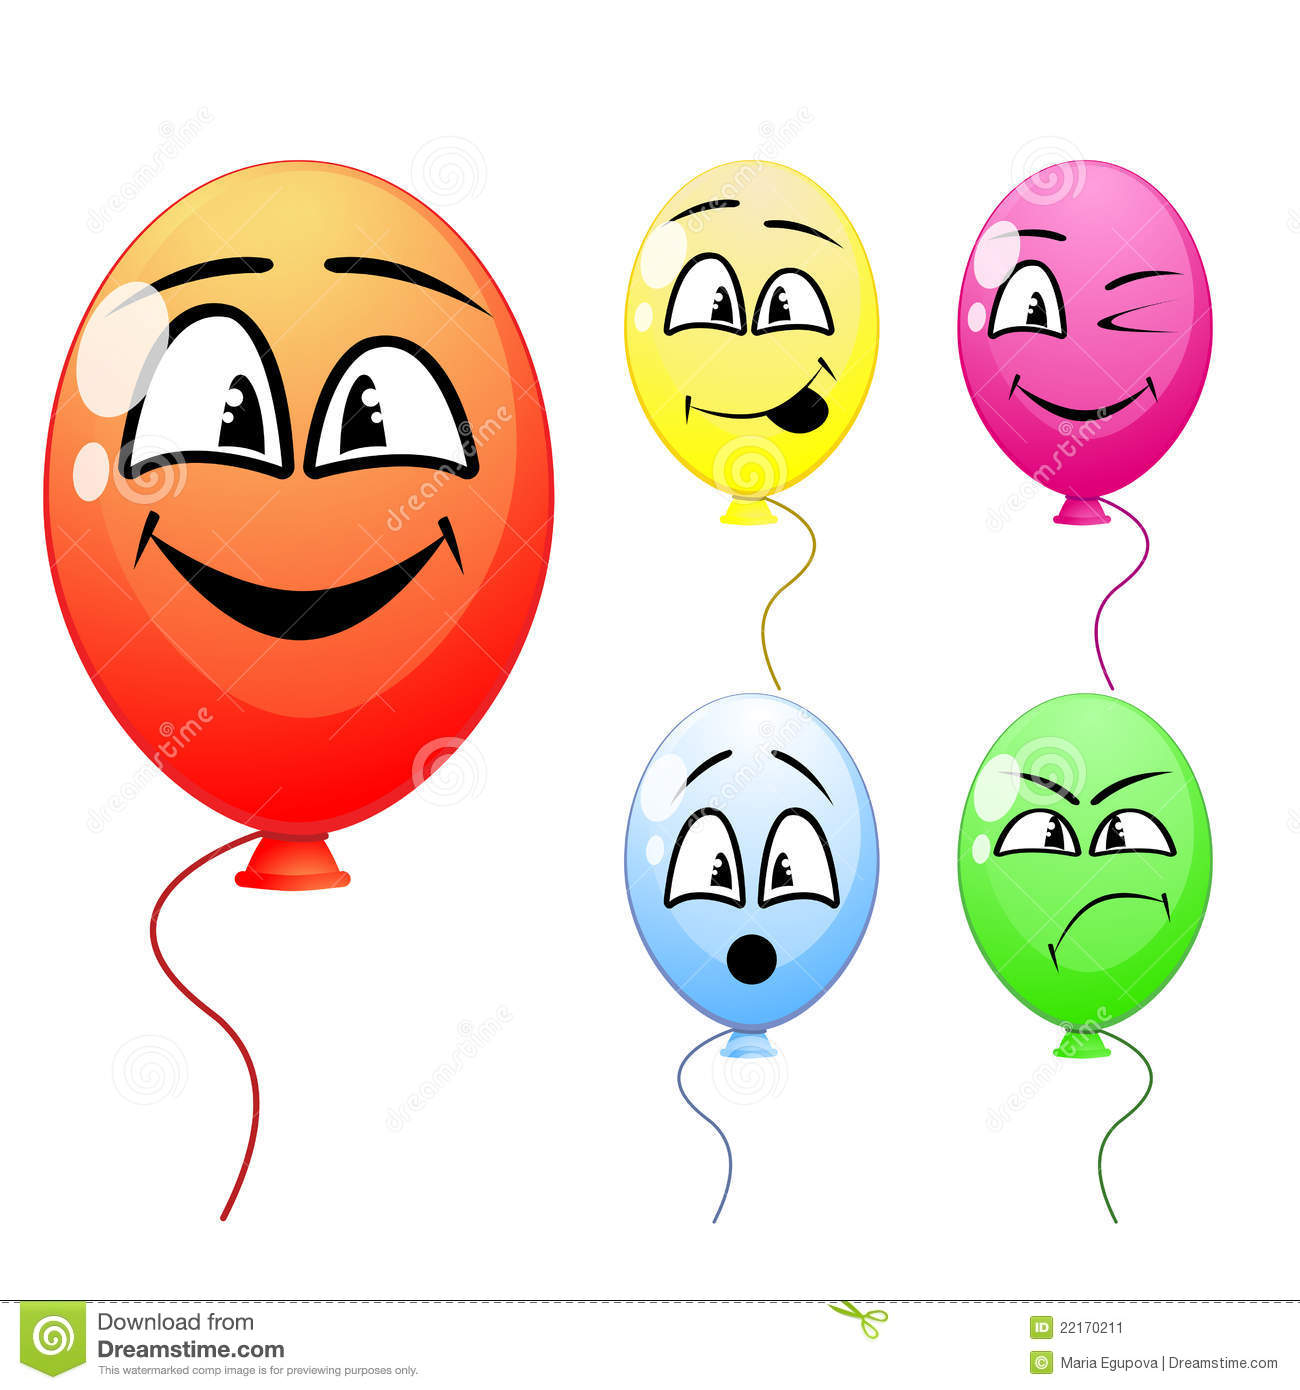 Funny balloon faces - Balloons Funny